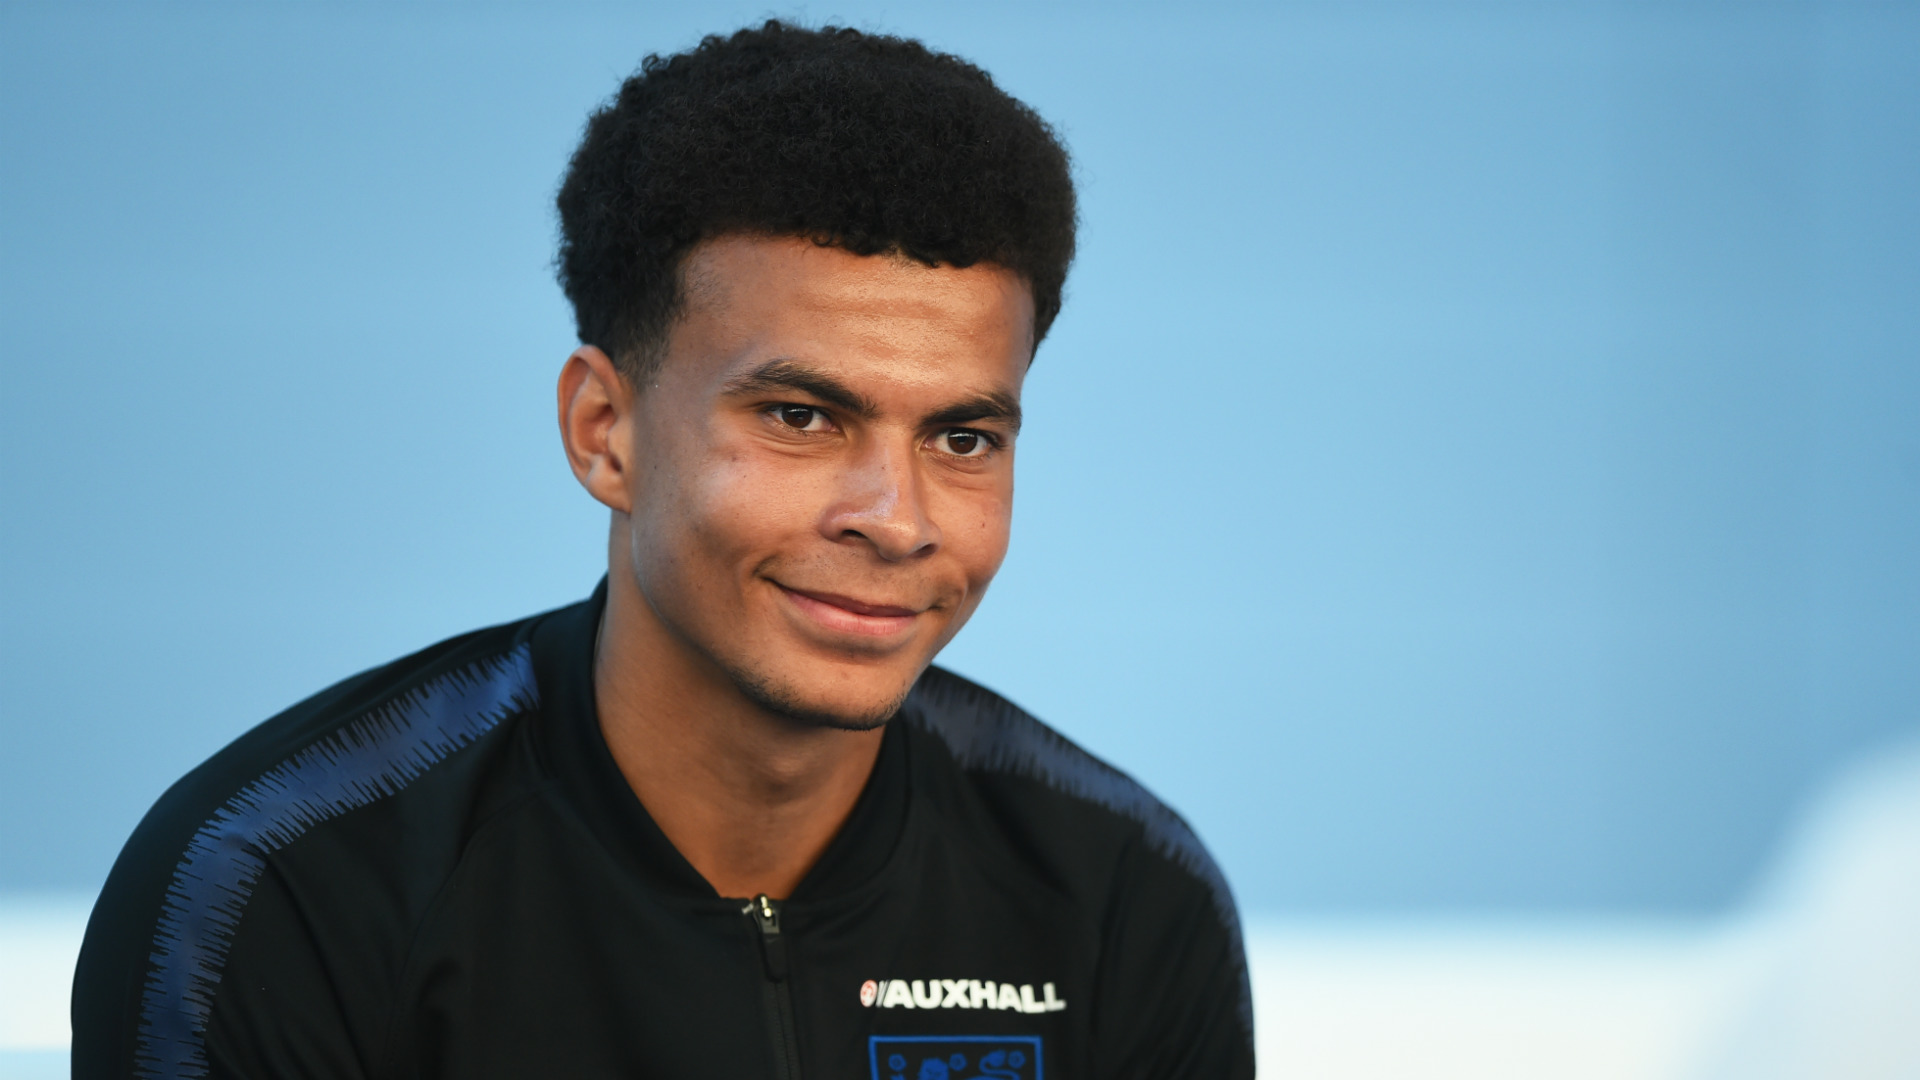 England vs Nigeria team news: Dele, Lingard &Sterling all start